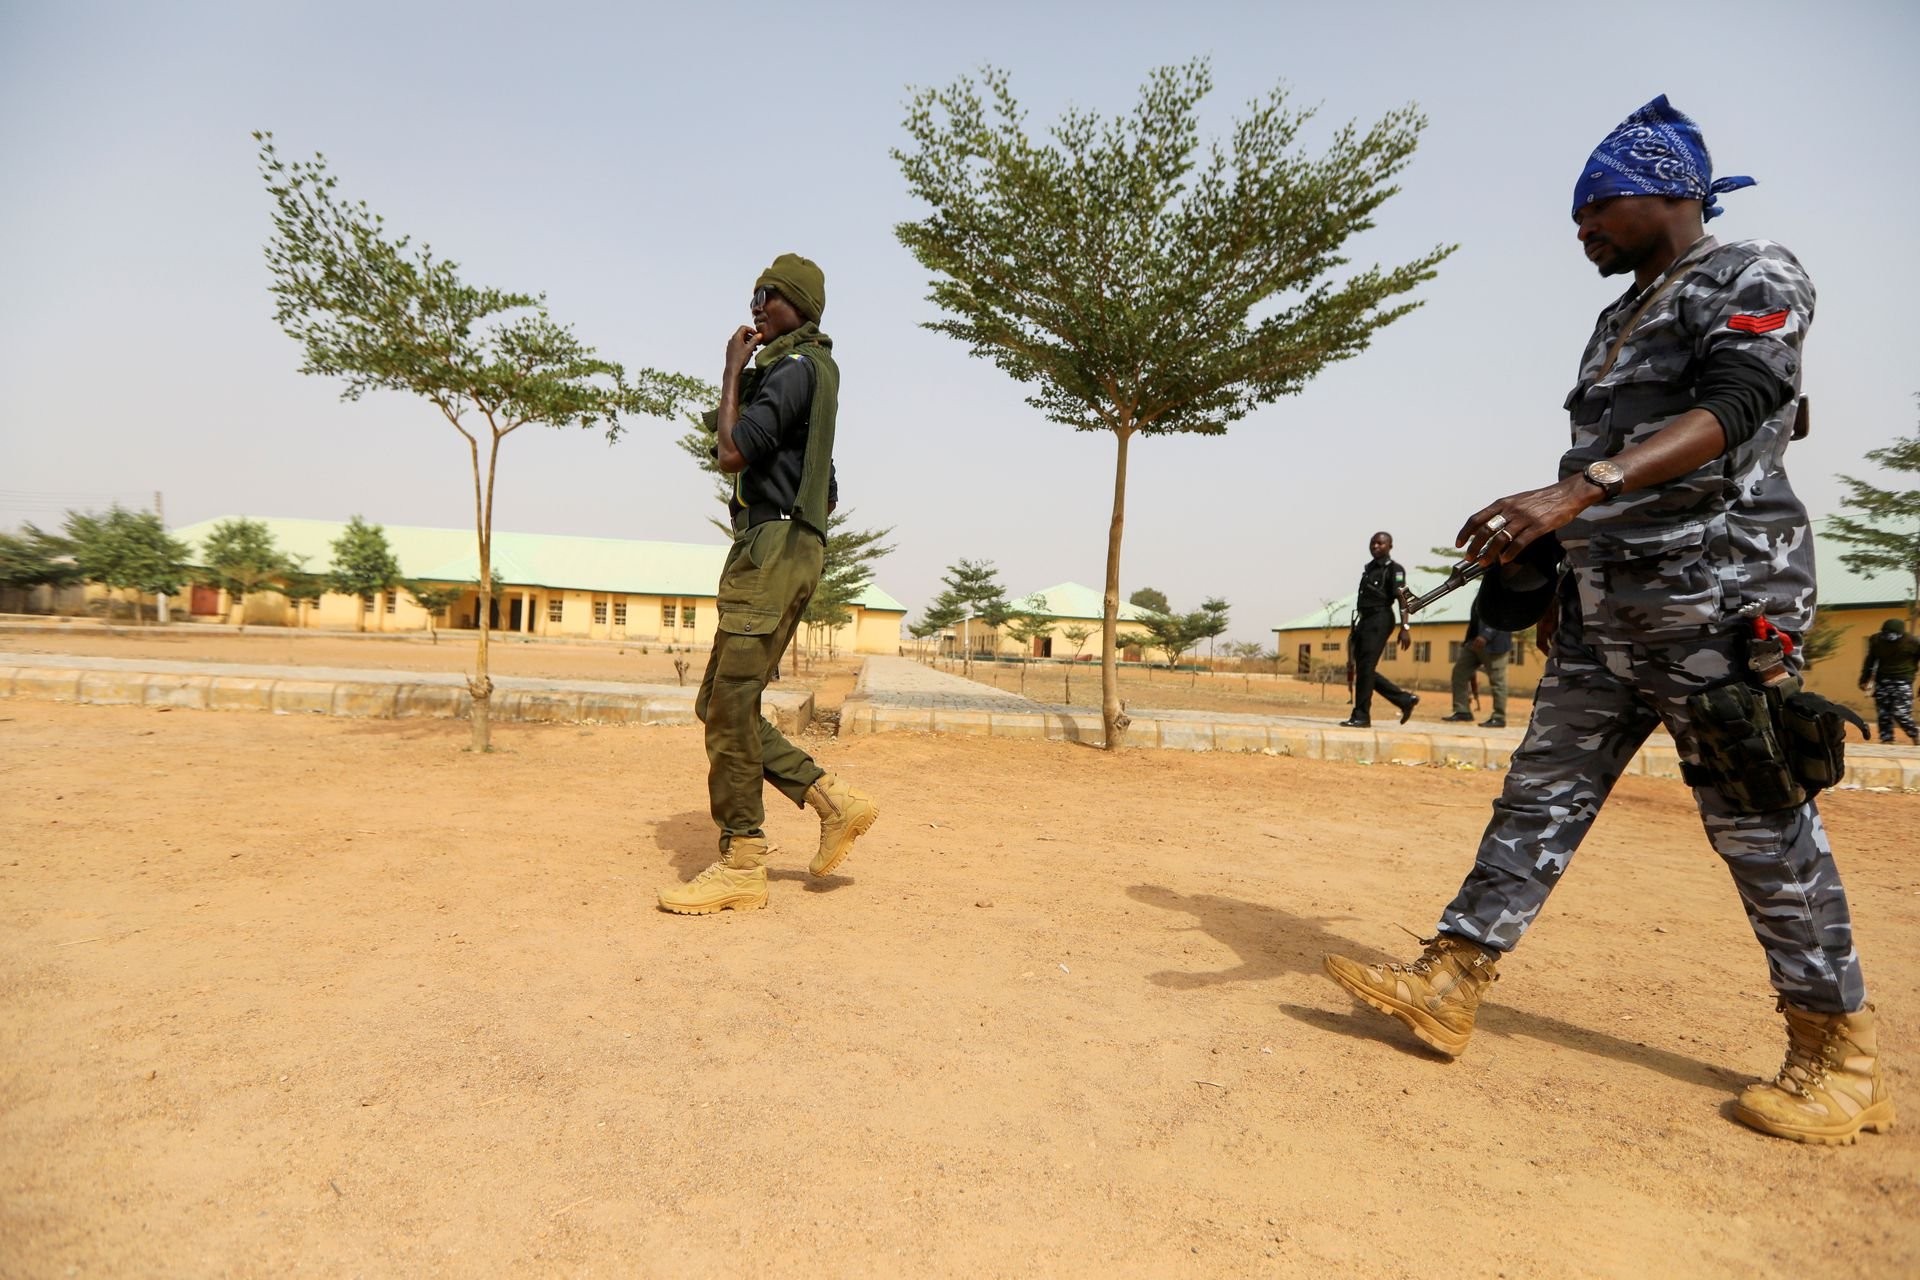 Nigeria Says 75 Abducted Schoolchildren Have Been Released Amid Military Crackdown